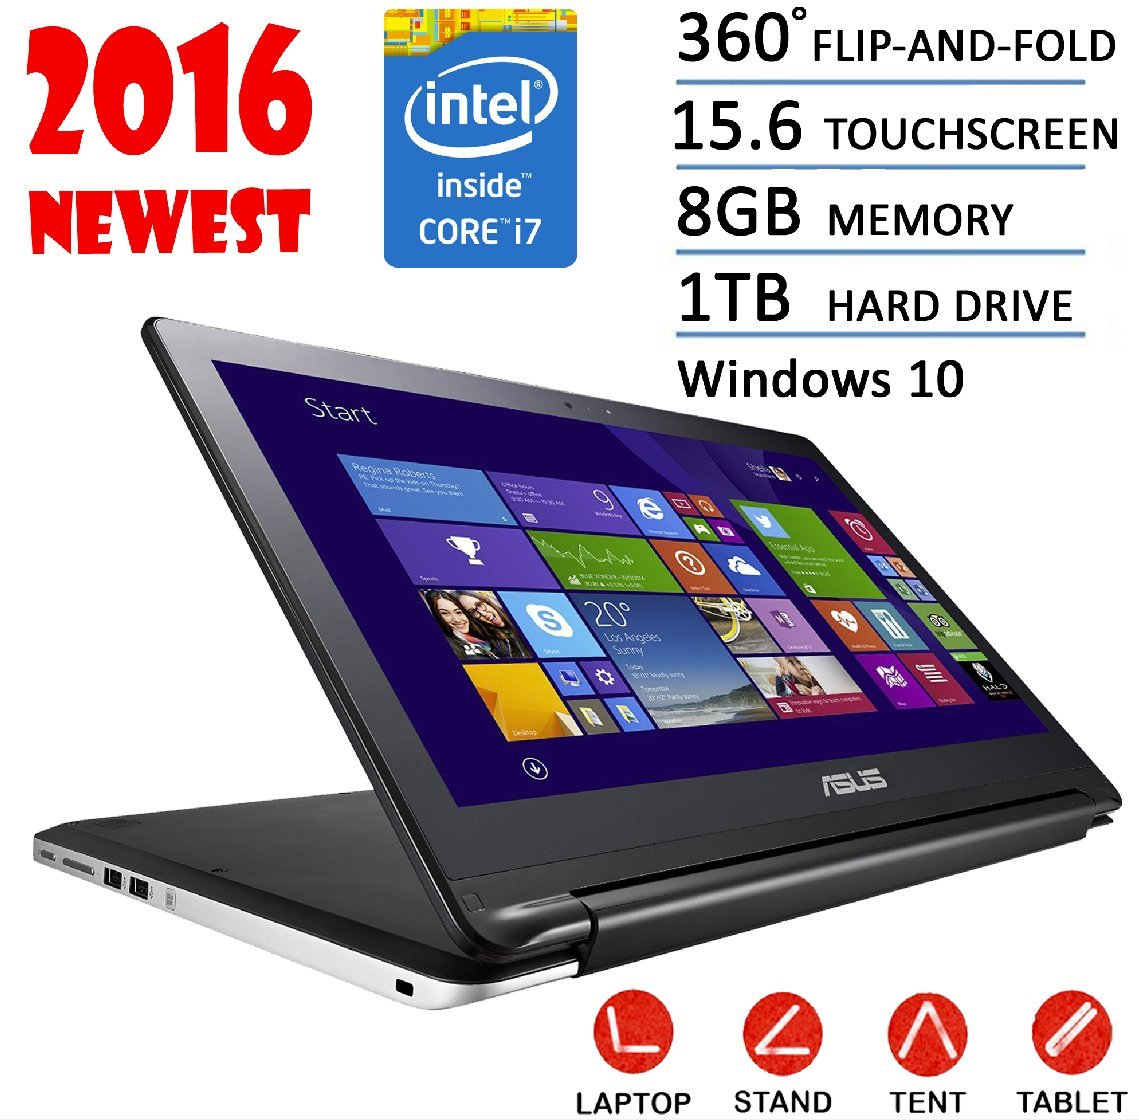 Asus 15.6 Flagship 2016 Edition Transformer Flip 2-in-1 Touchscreen Tablet Laptop , Intel Core i7-5500U 2.4GHZ 8G 1T HDD HDMI Bluetooth Windows 10